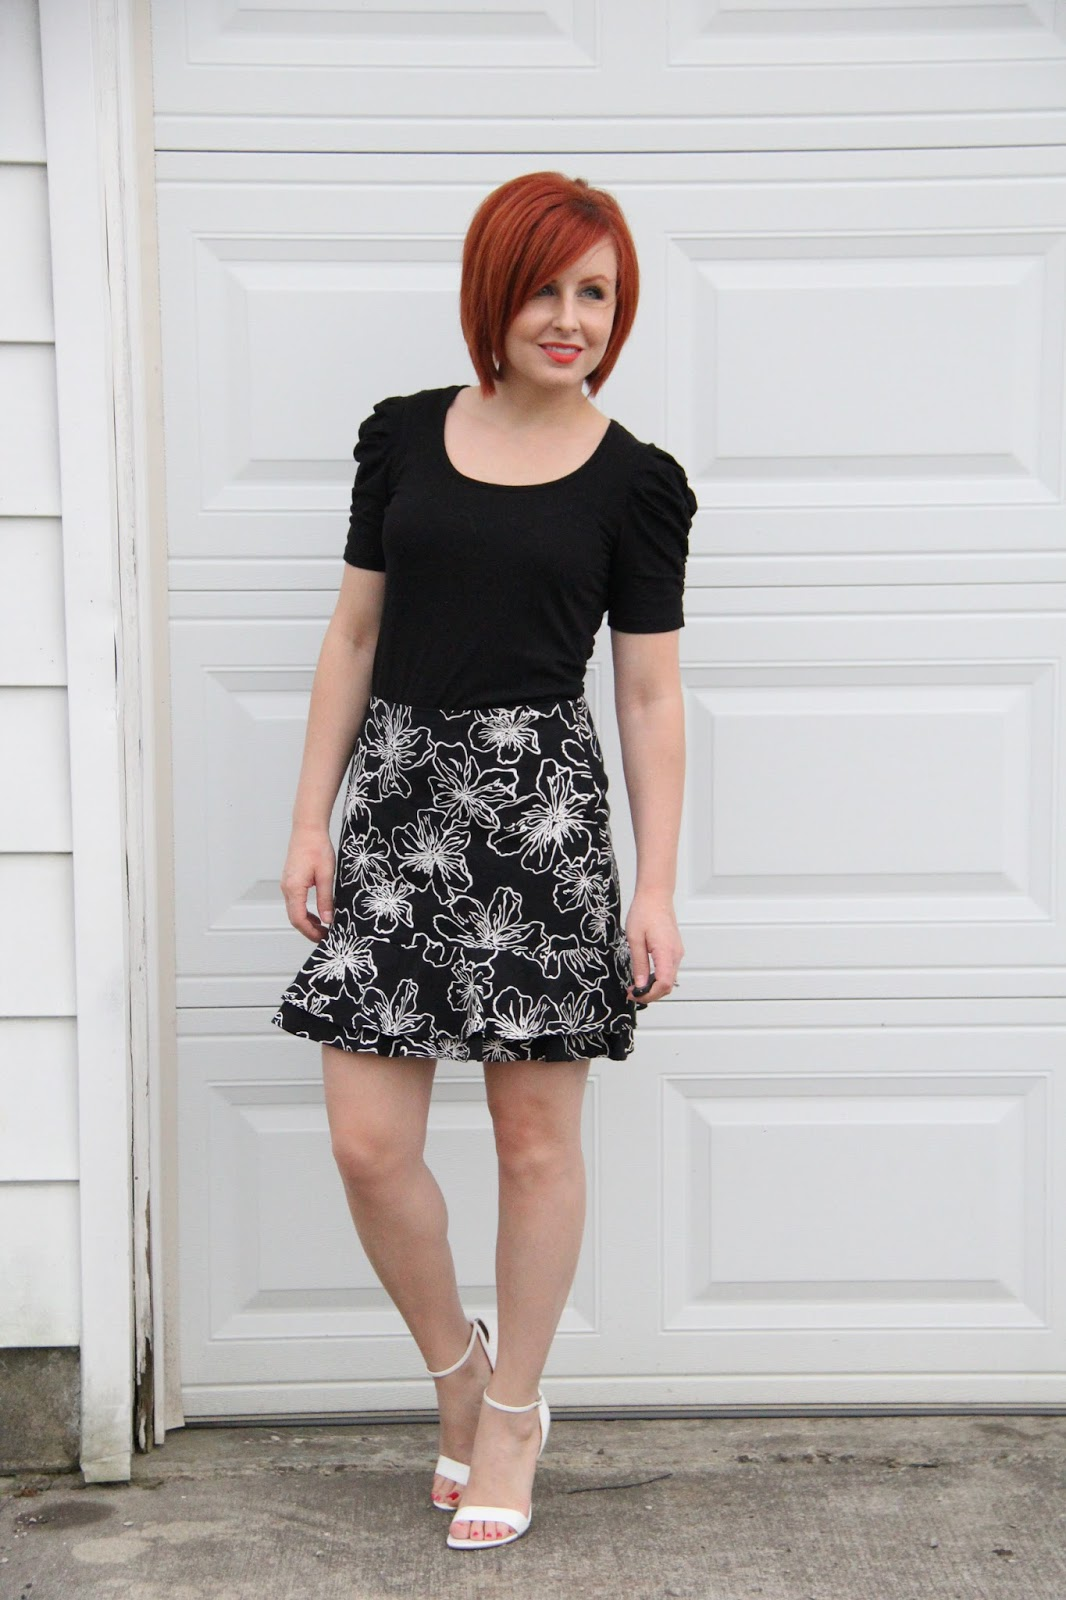 Thrift And Shout: Cute Outfit Of The Day: Fit And Flare Skirt